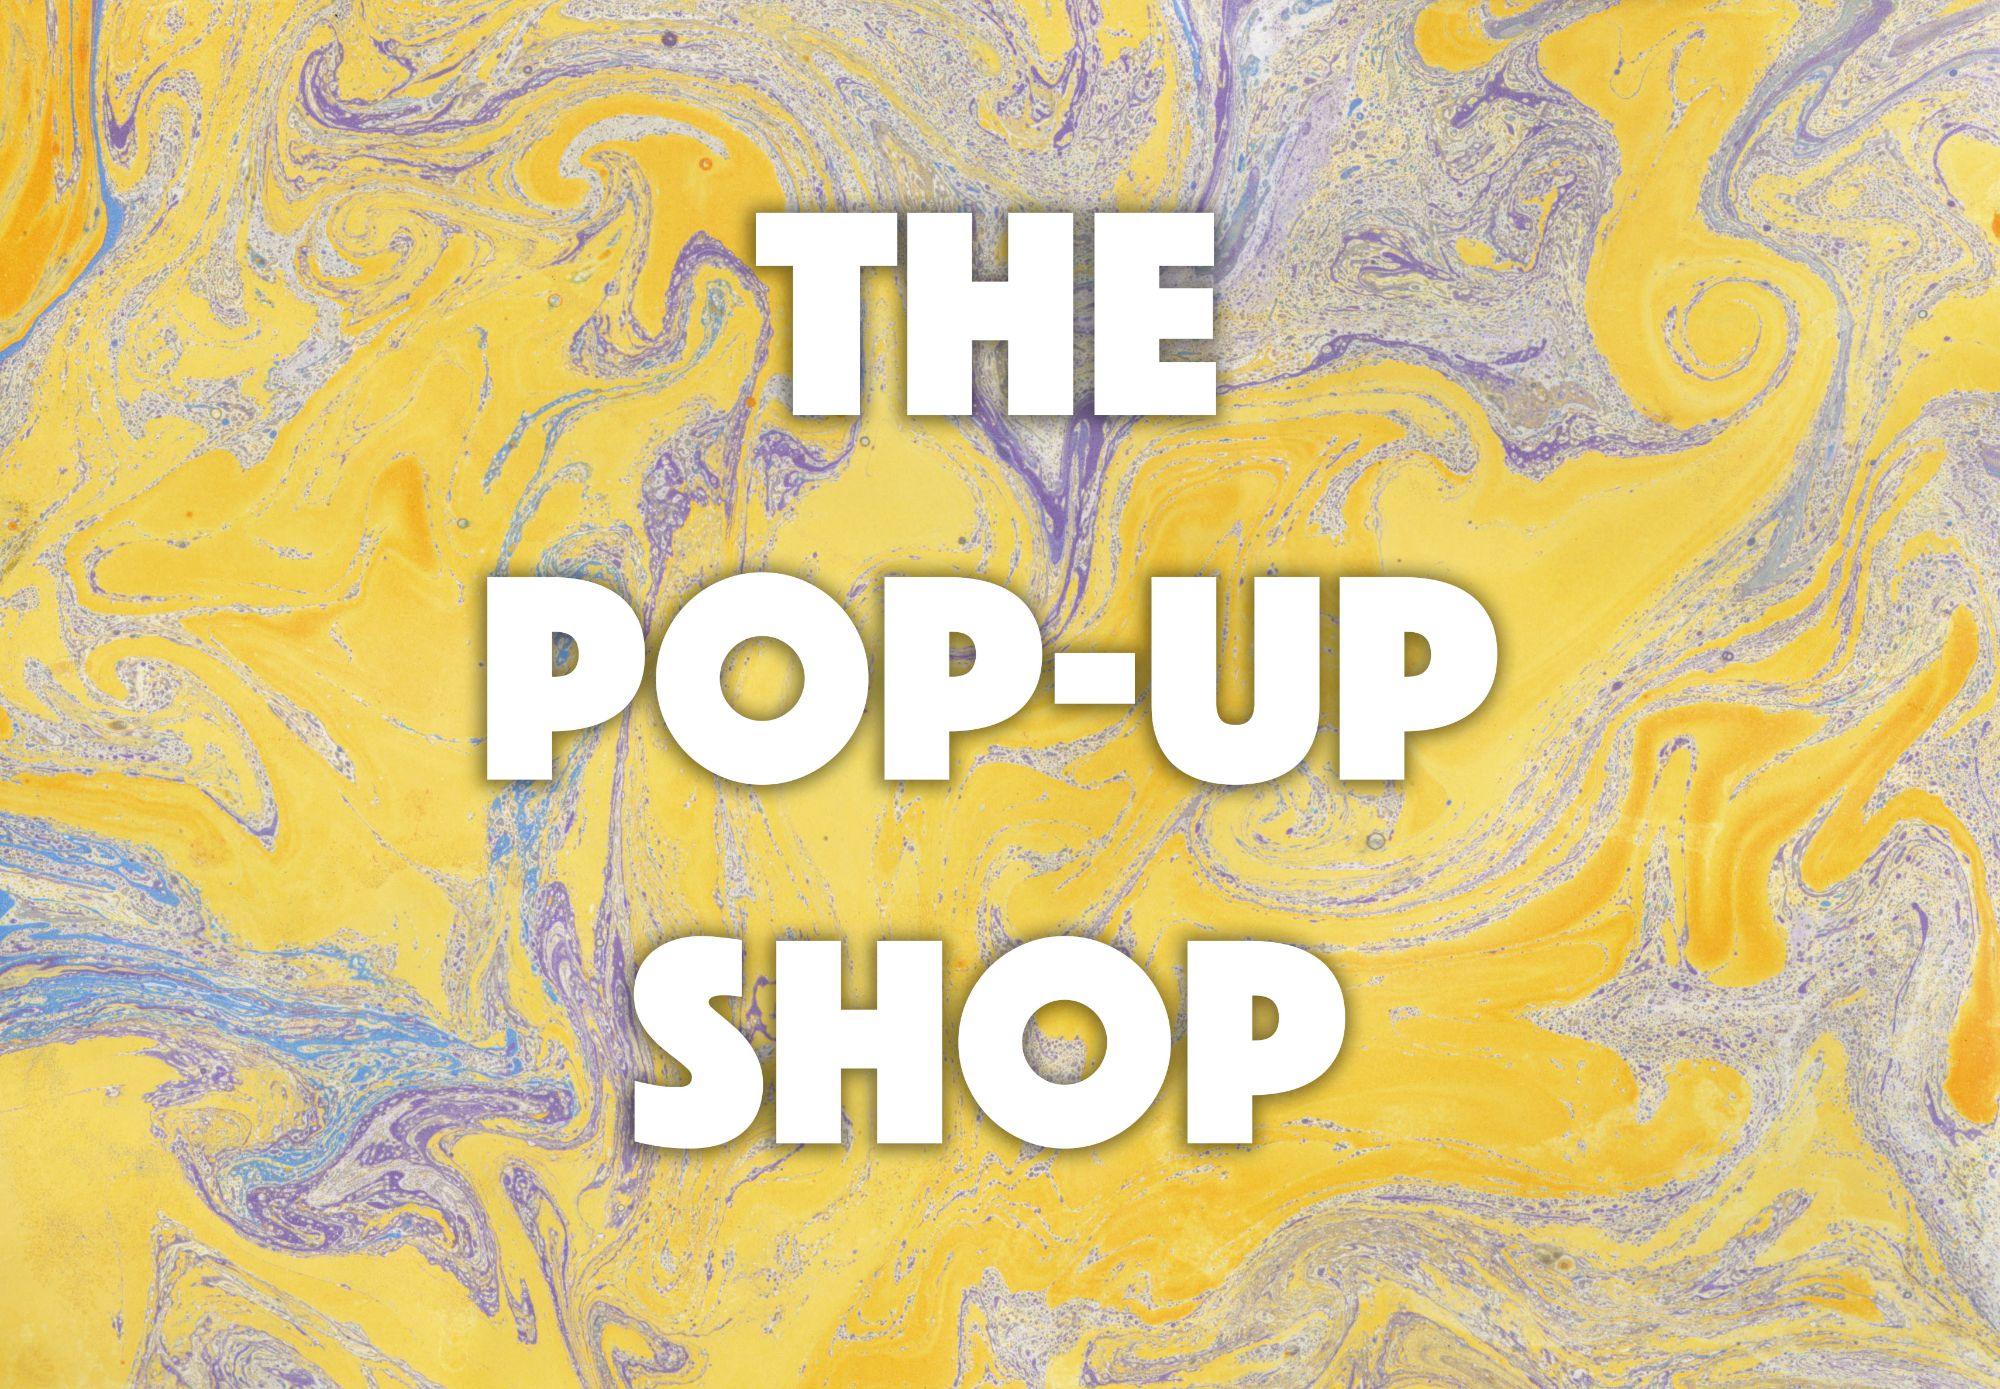 The Pop-Up Shop, logo designed for Off/Beat by Rachel Anderson 2019